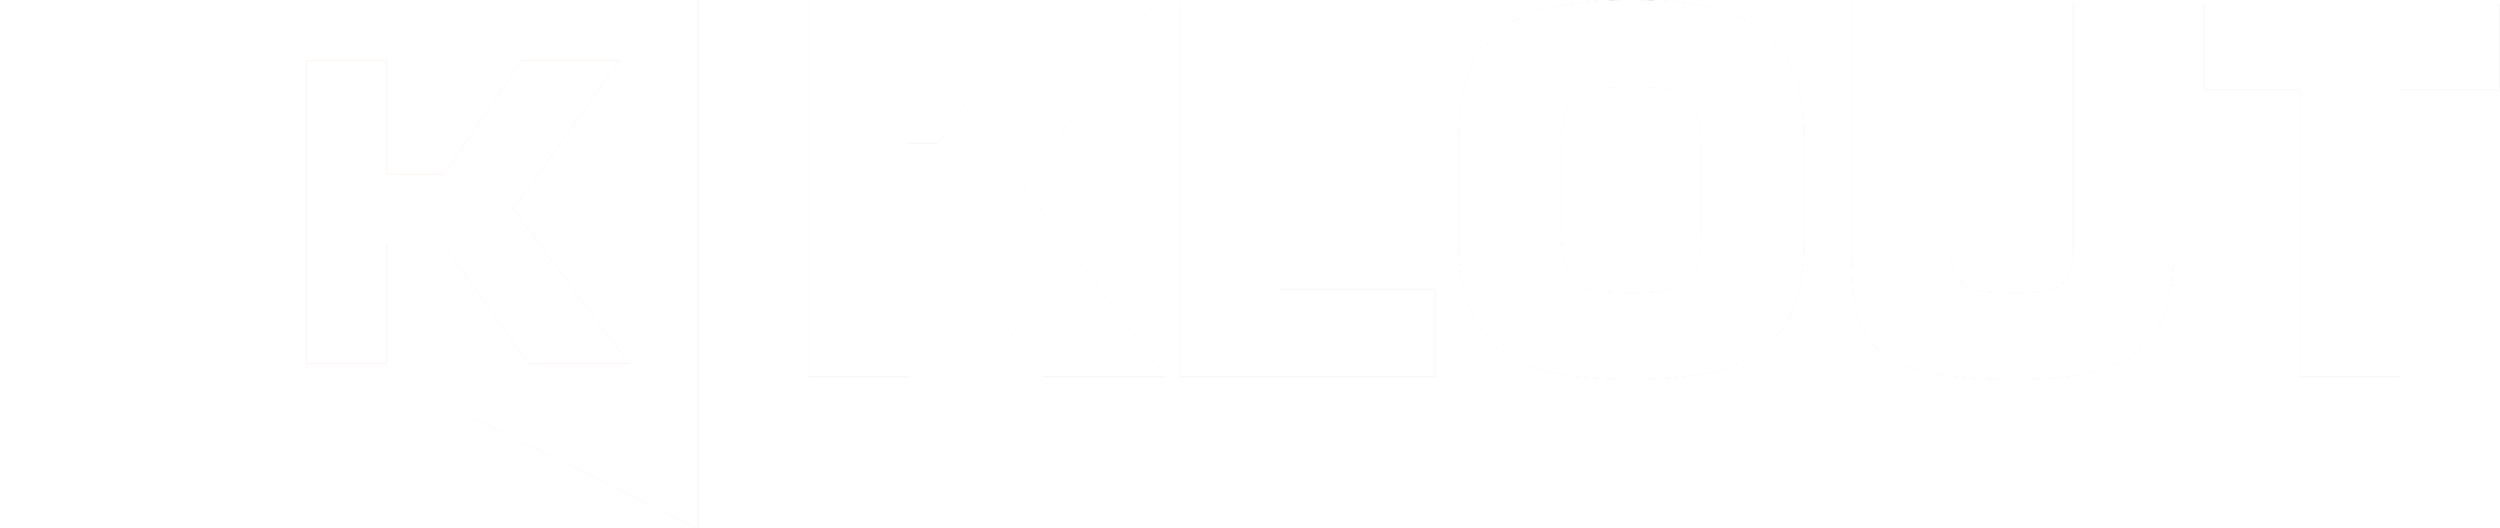 Klout.png